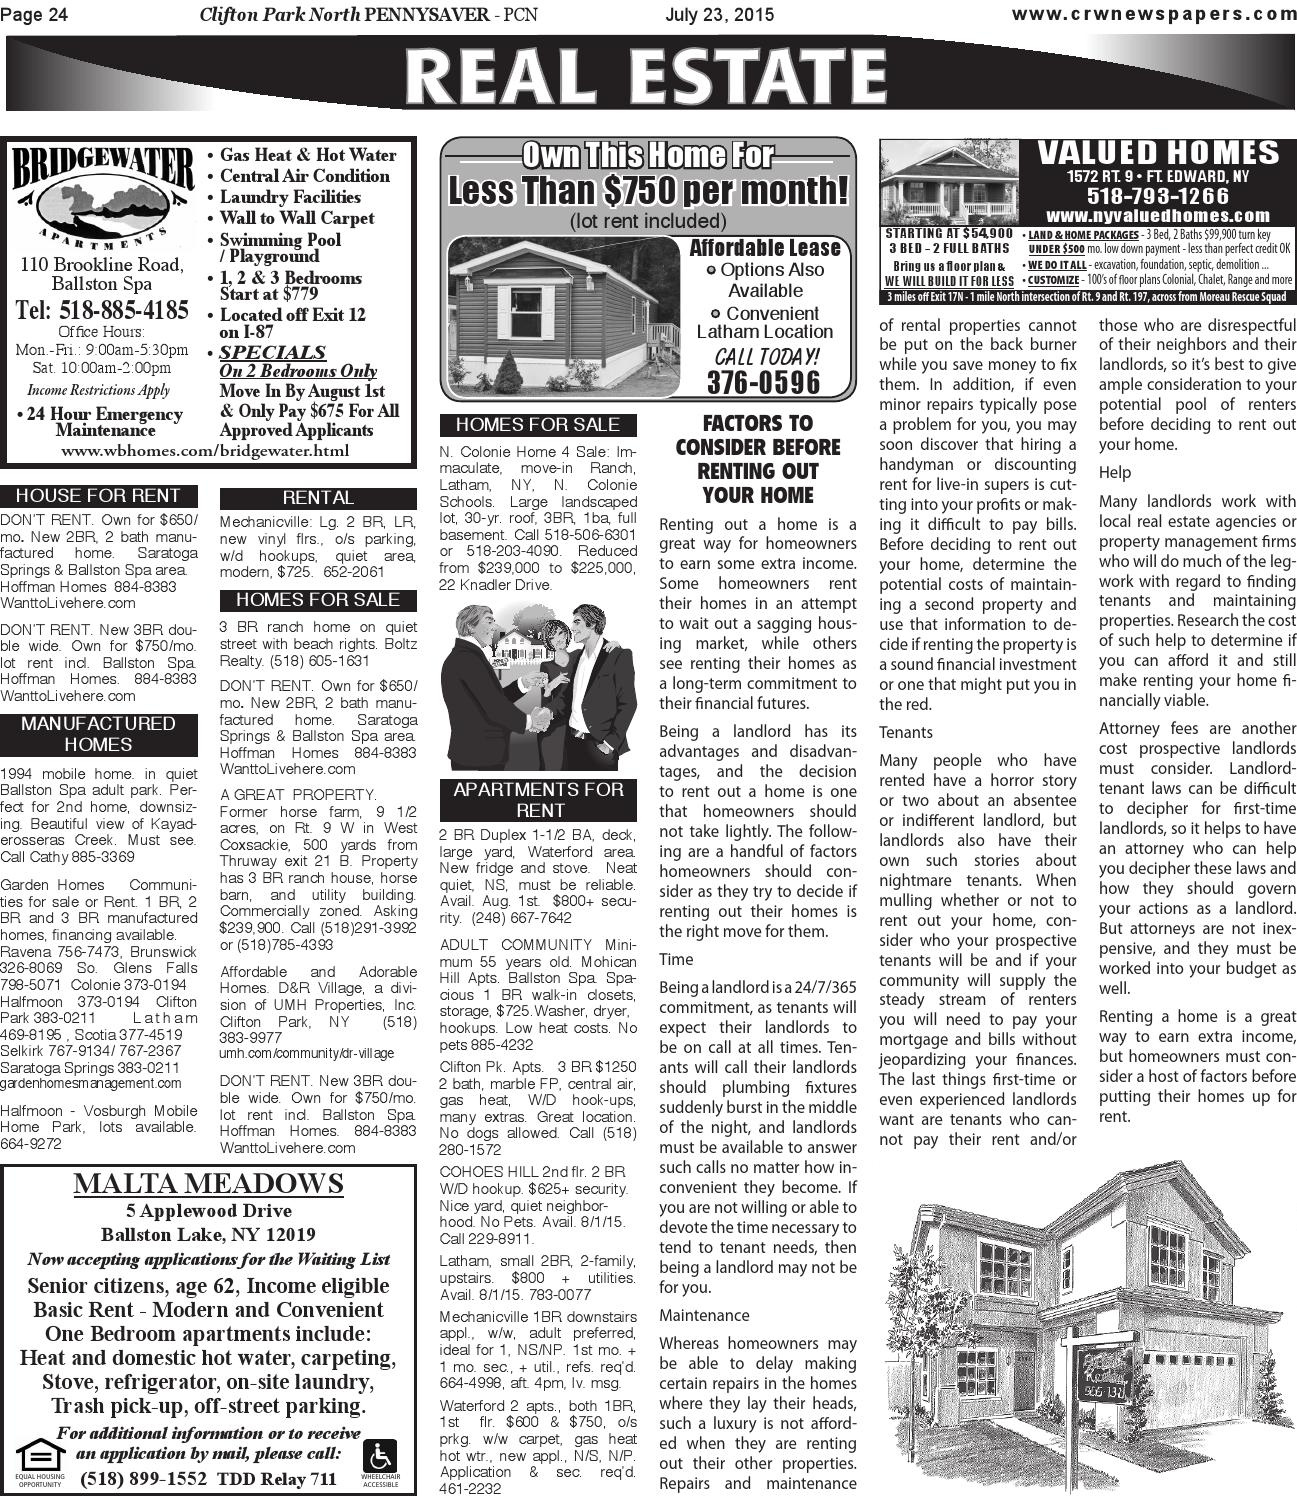 Clifton Park North Pennysaver 072315 By Capital Region Weekly Newspapers Issuu